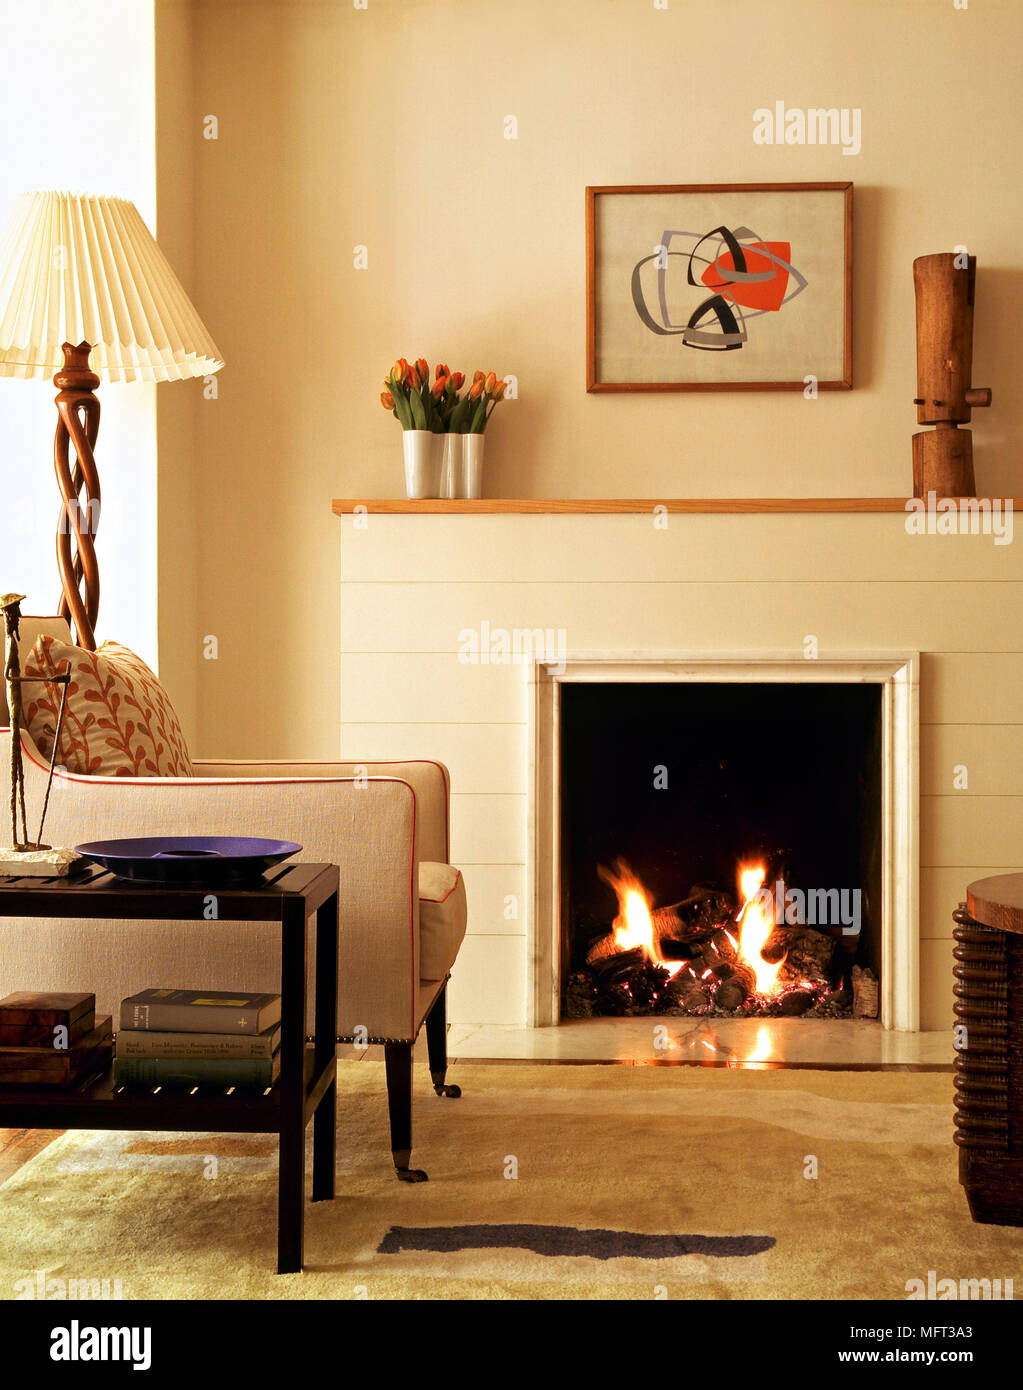 Modern neutral sitting room fireplace open fire upholstered armchair side table standard l& Interiors rooms fireplaces retro furniture lit fires & Modern neutral sitting room fireplace open fire upholstered armchair ...